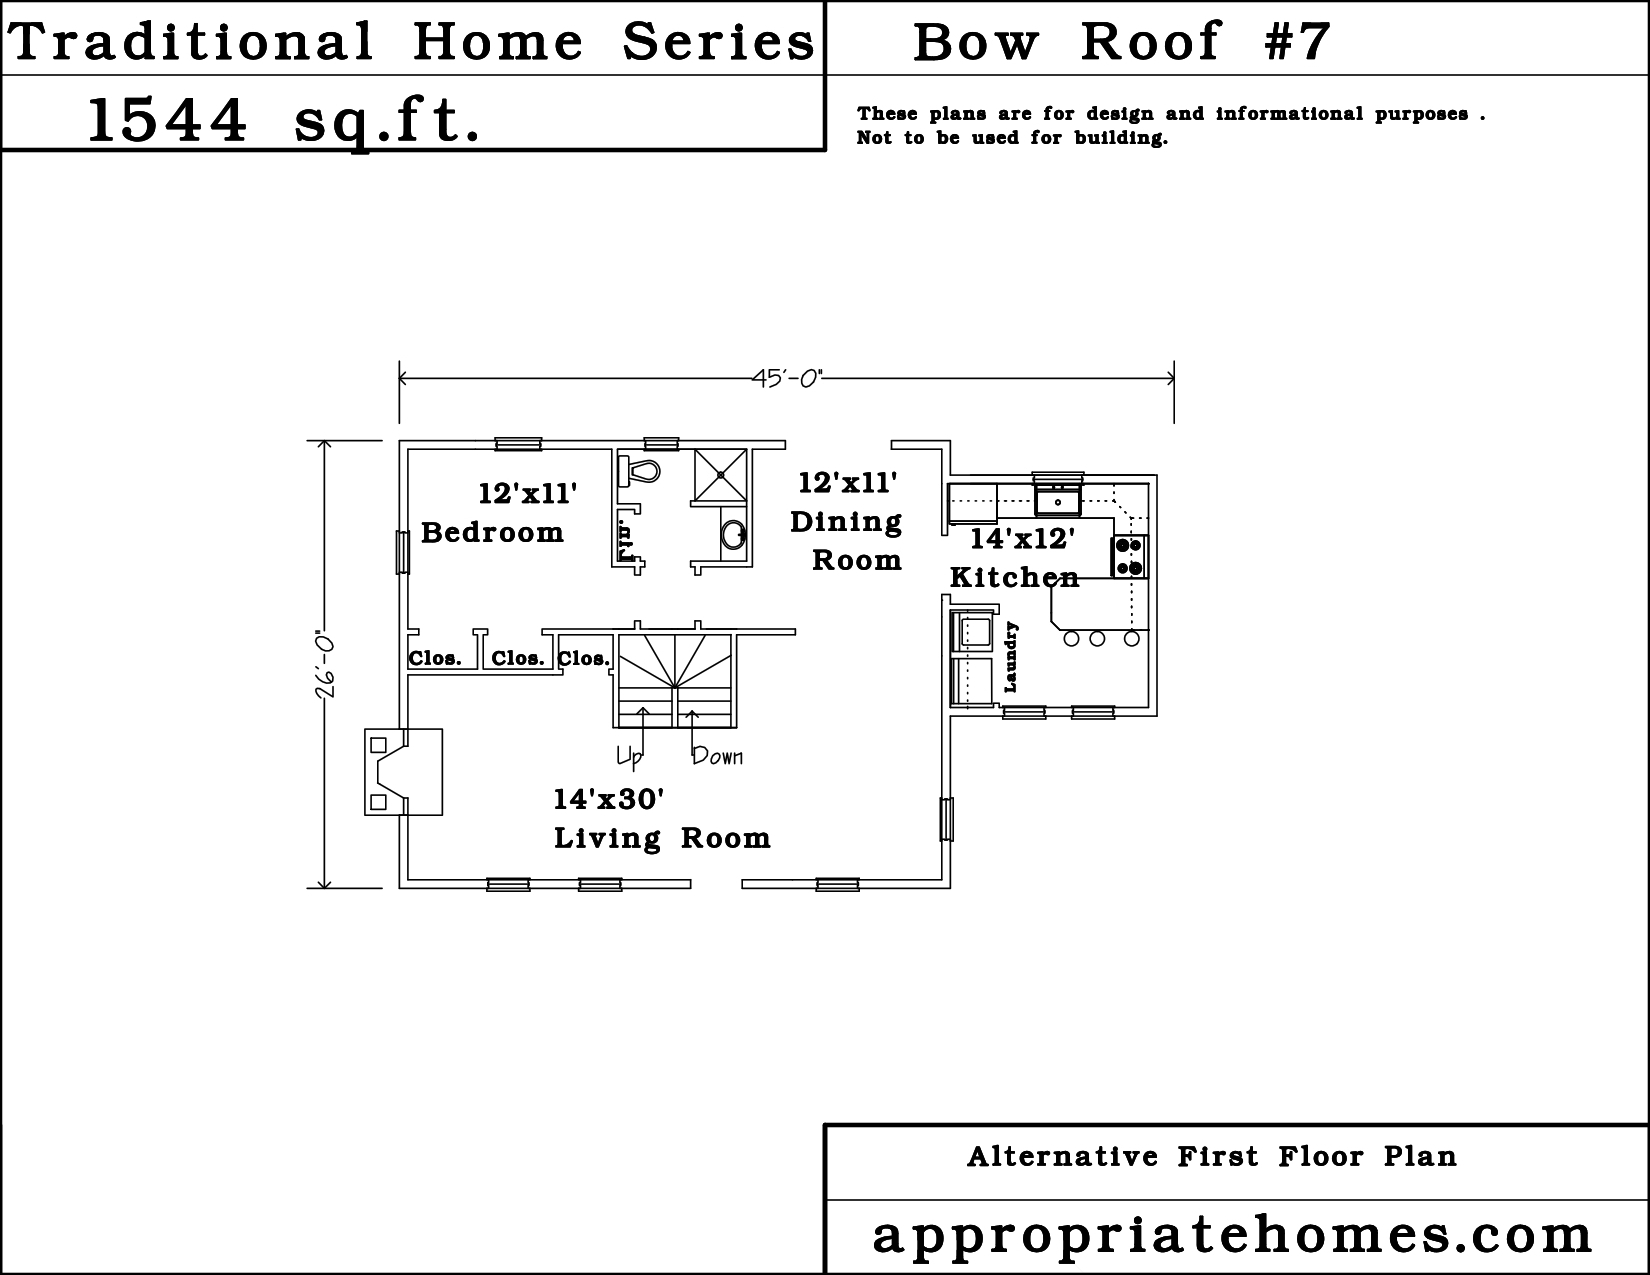 Bow house plans 28 images cape cod home design bow for Bow roof house plans